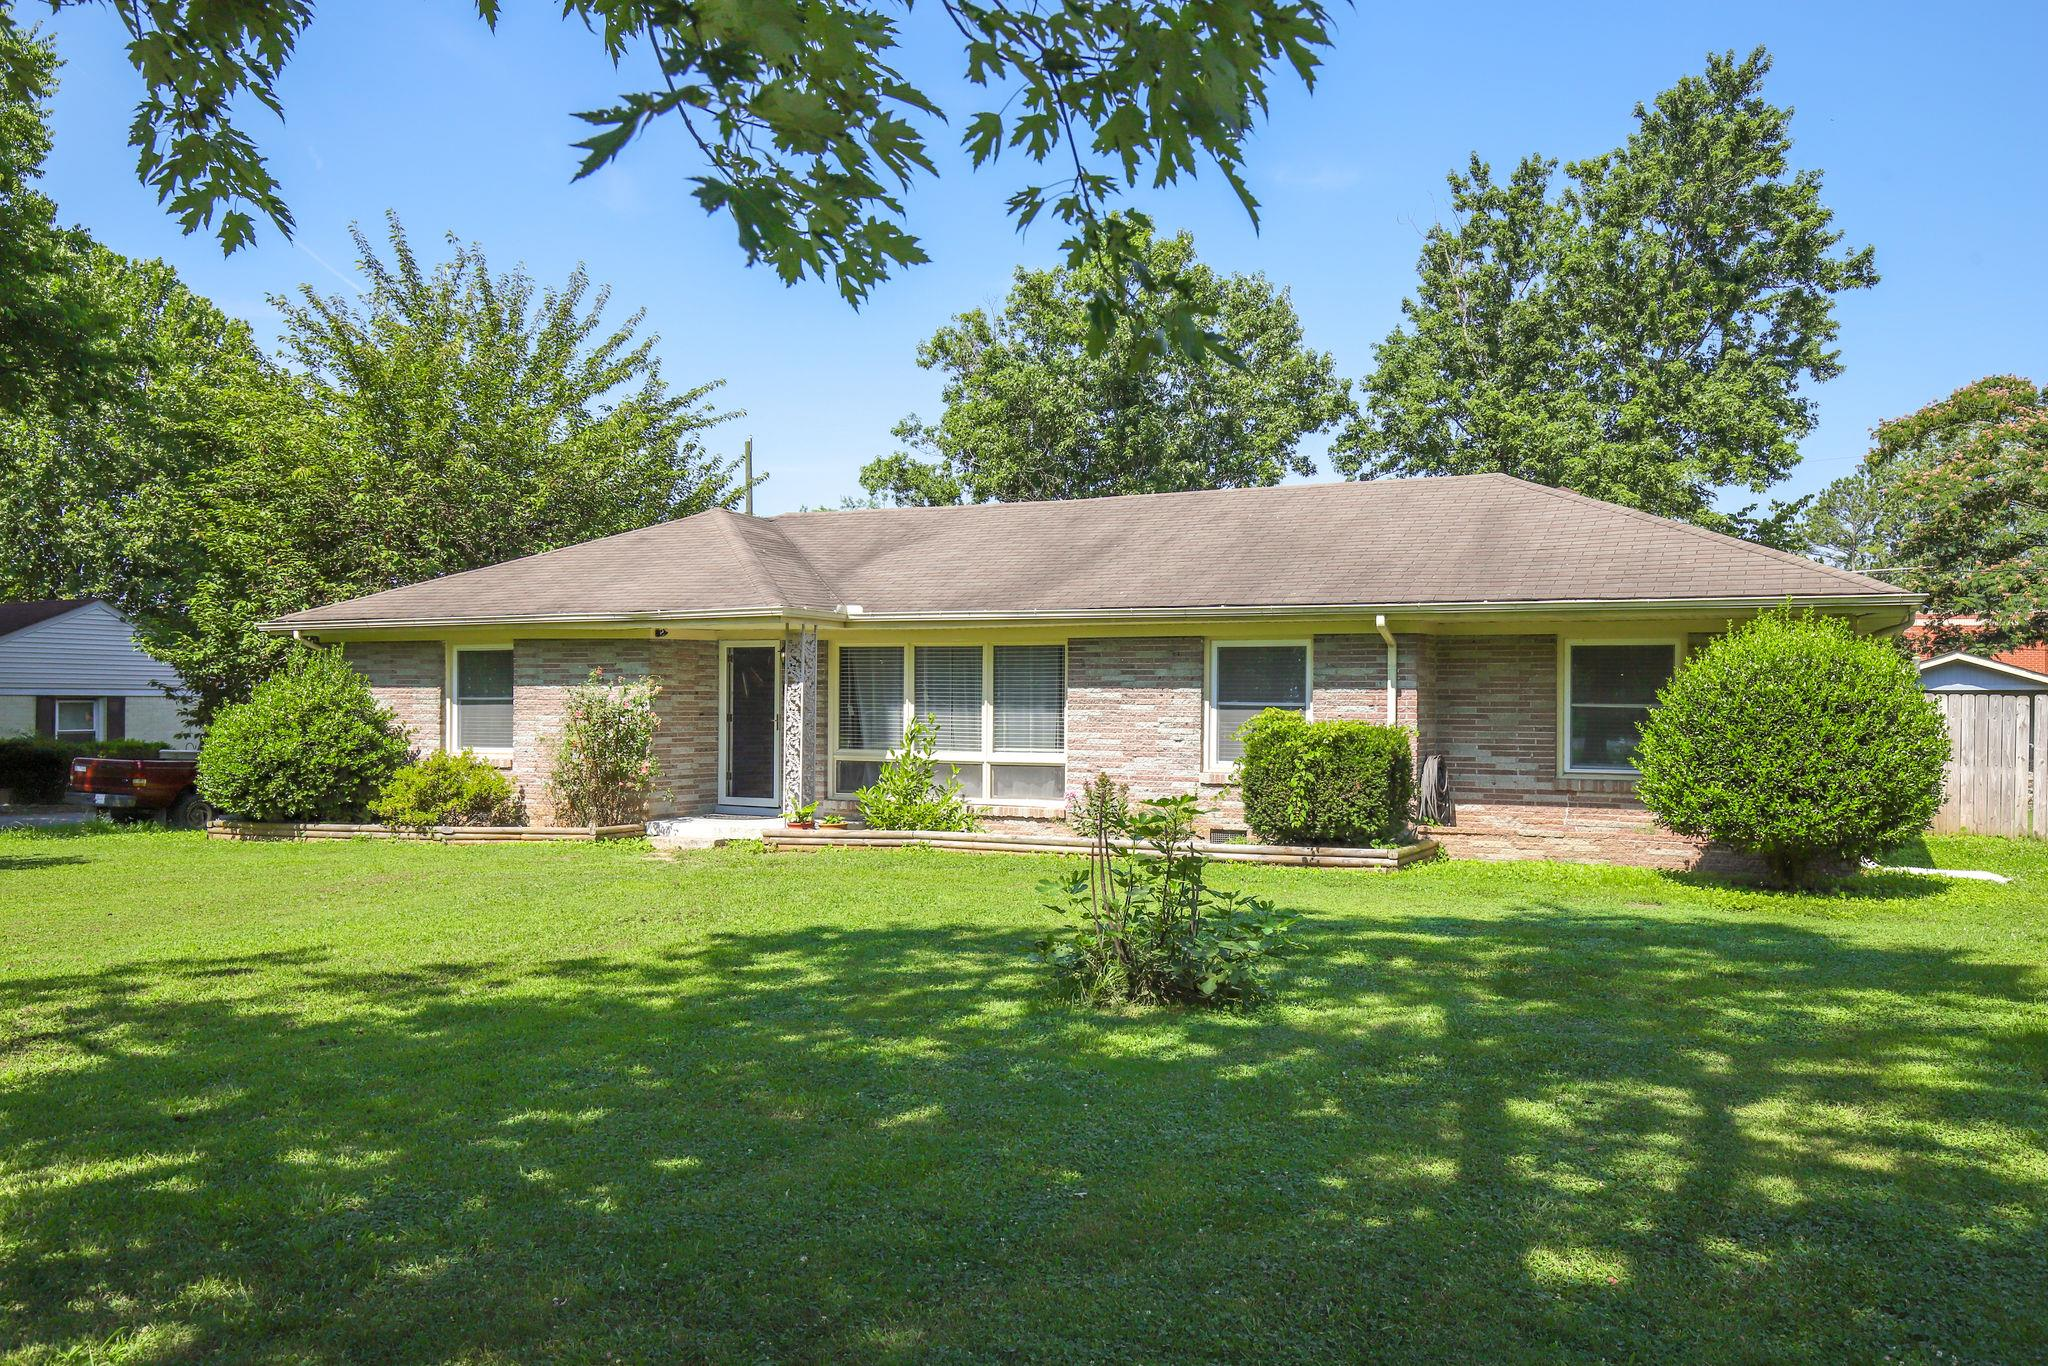 418 Richland Cir 37066 - One of Gallatin Homes for Sale